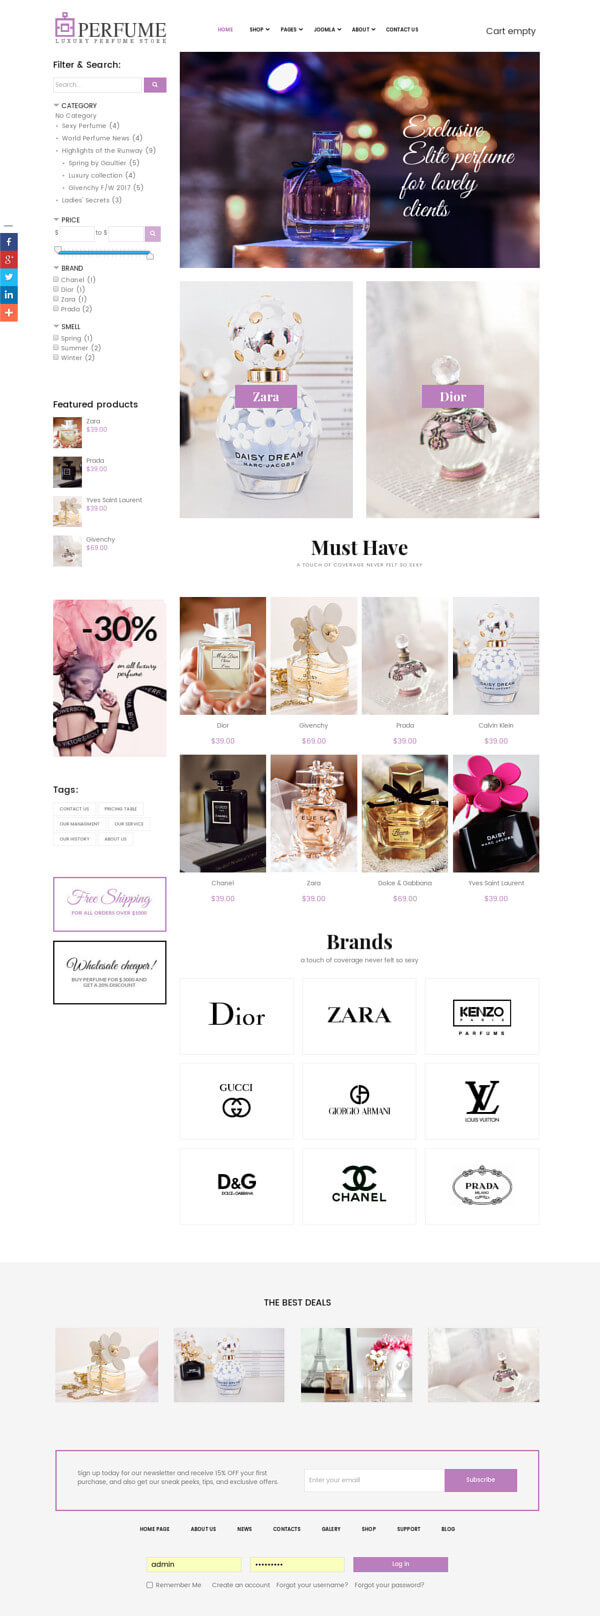 Perfume - Joomla eCommerce template, full screen